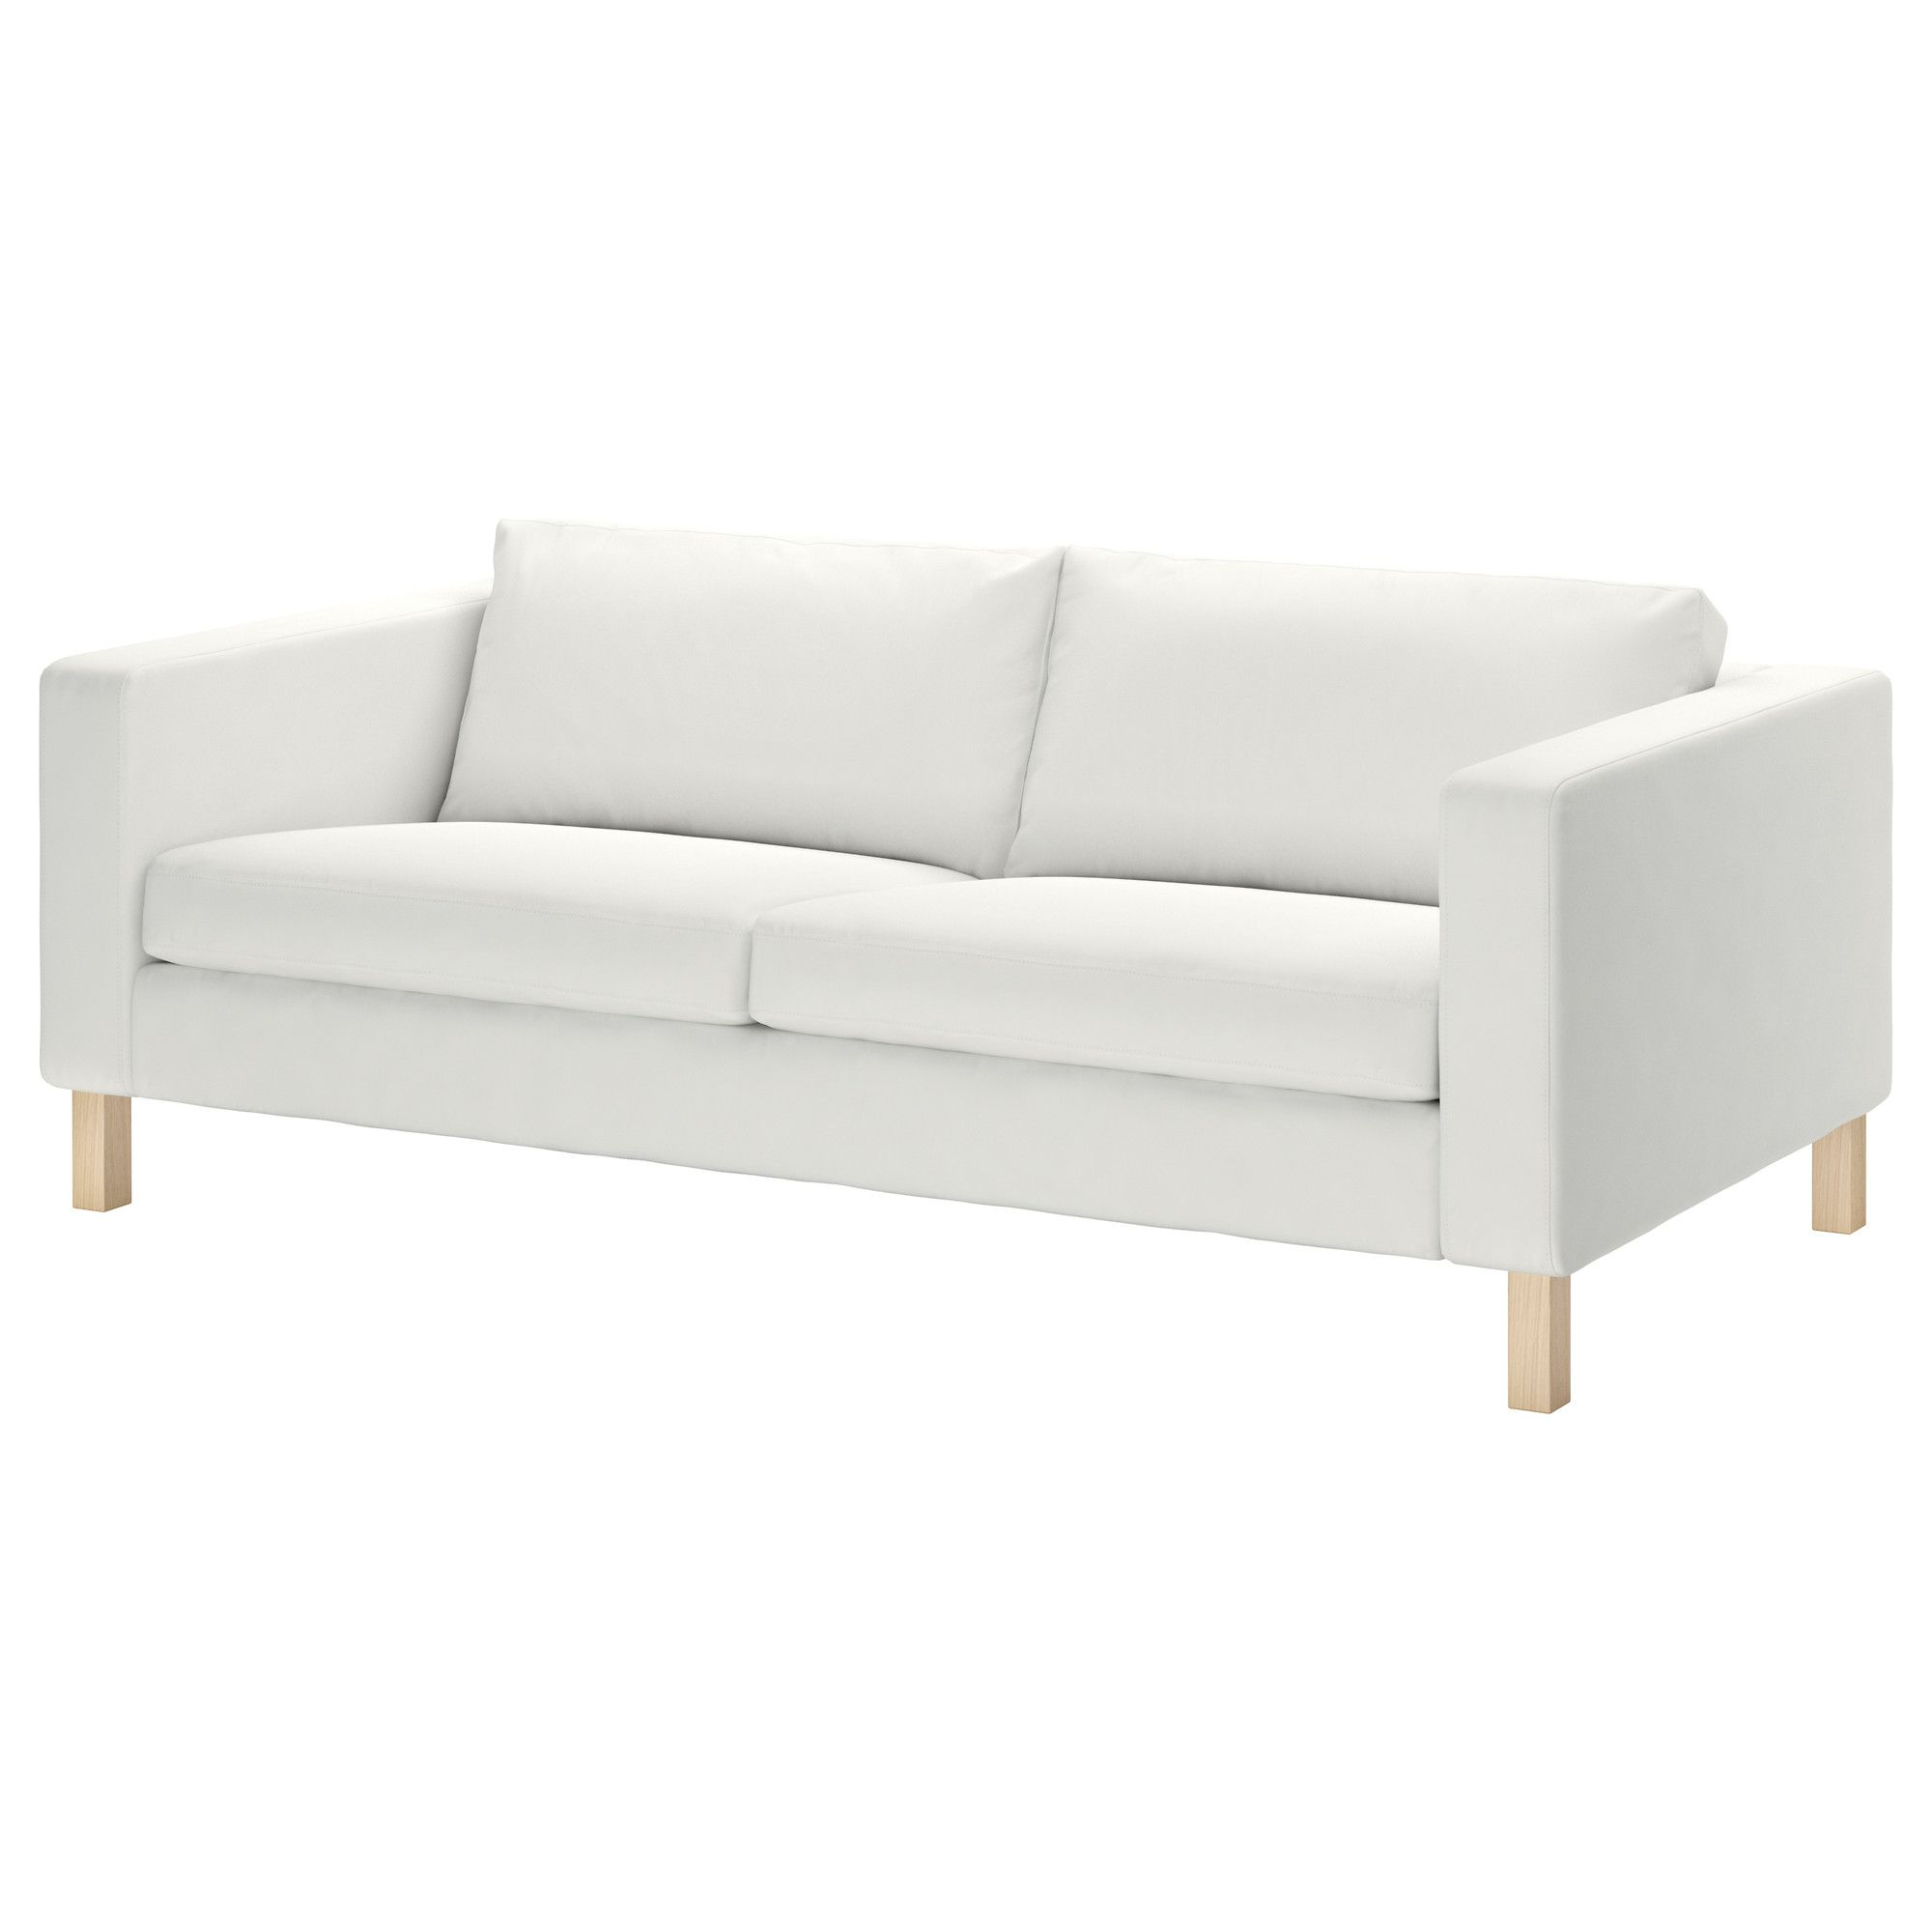 ikea karlstad sofa blekinge white 399 this would work for our living room i would want to dye the cover red aqua or royal blue possibly - Ikea Karlstad Sofa